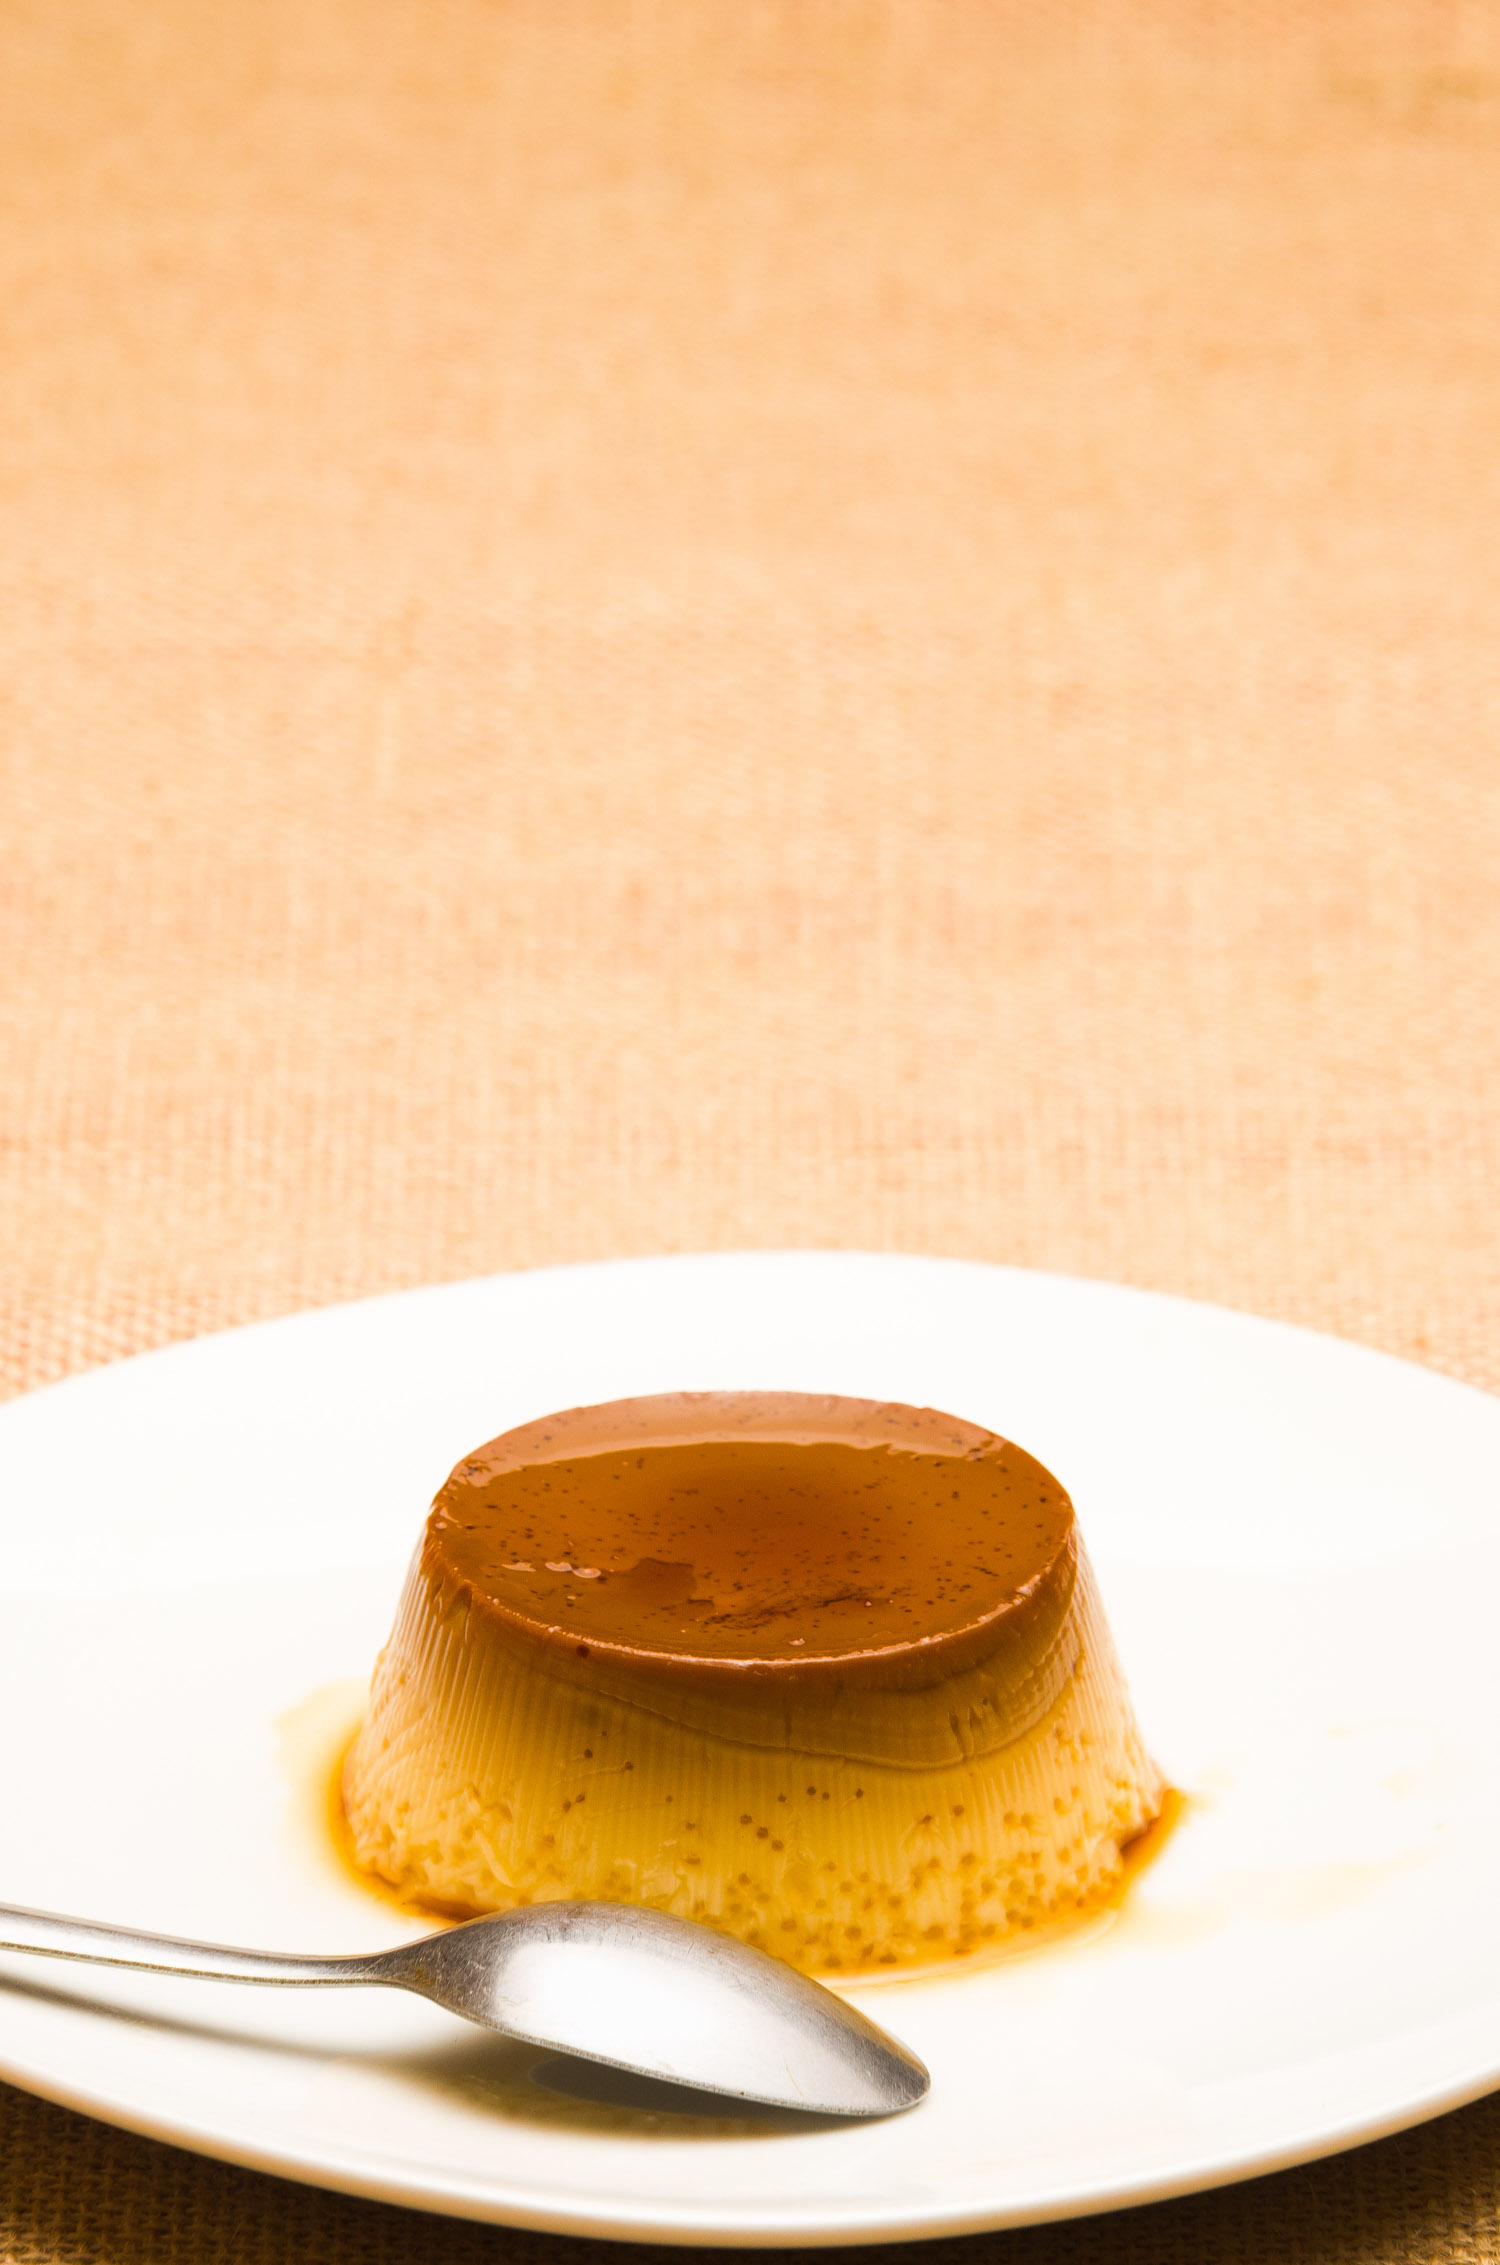 Caramel flan on a white plate.